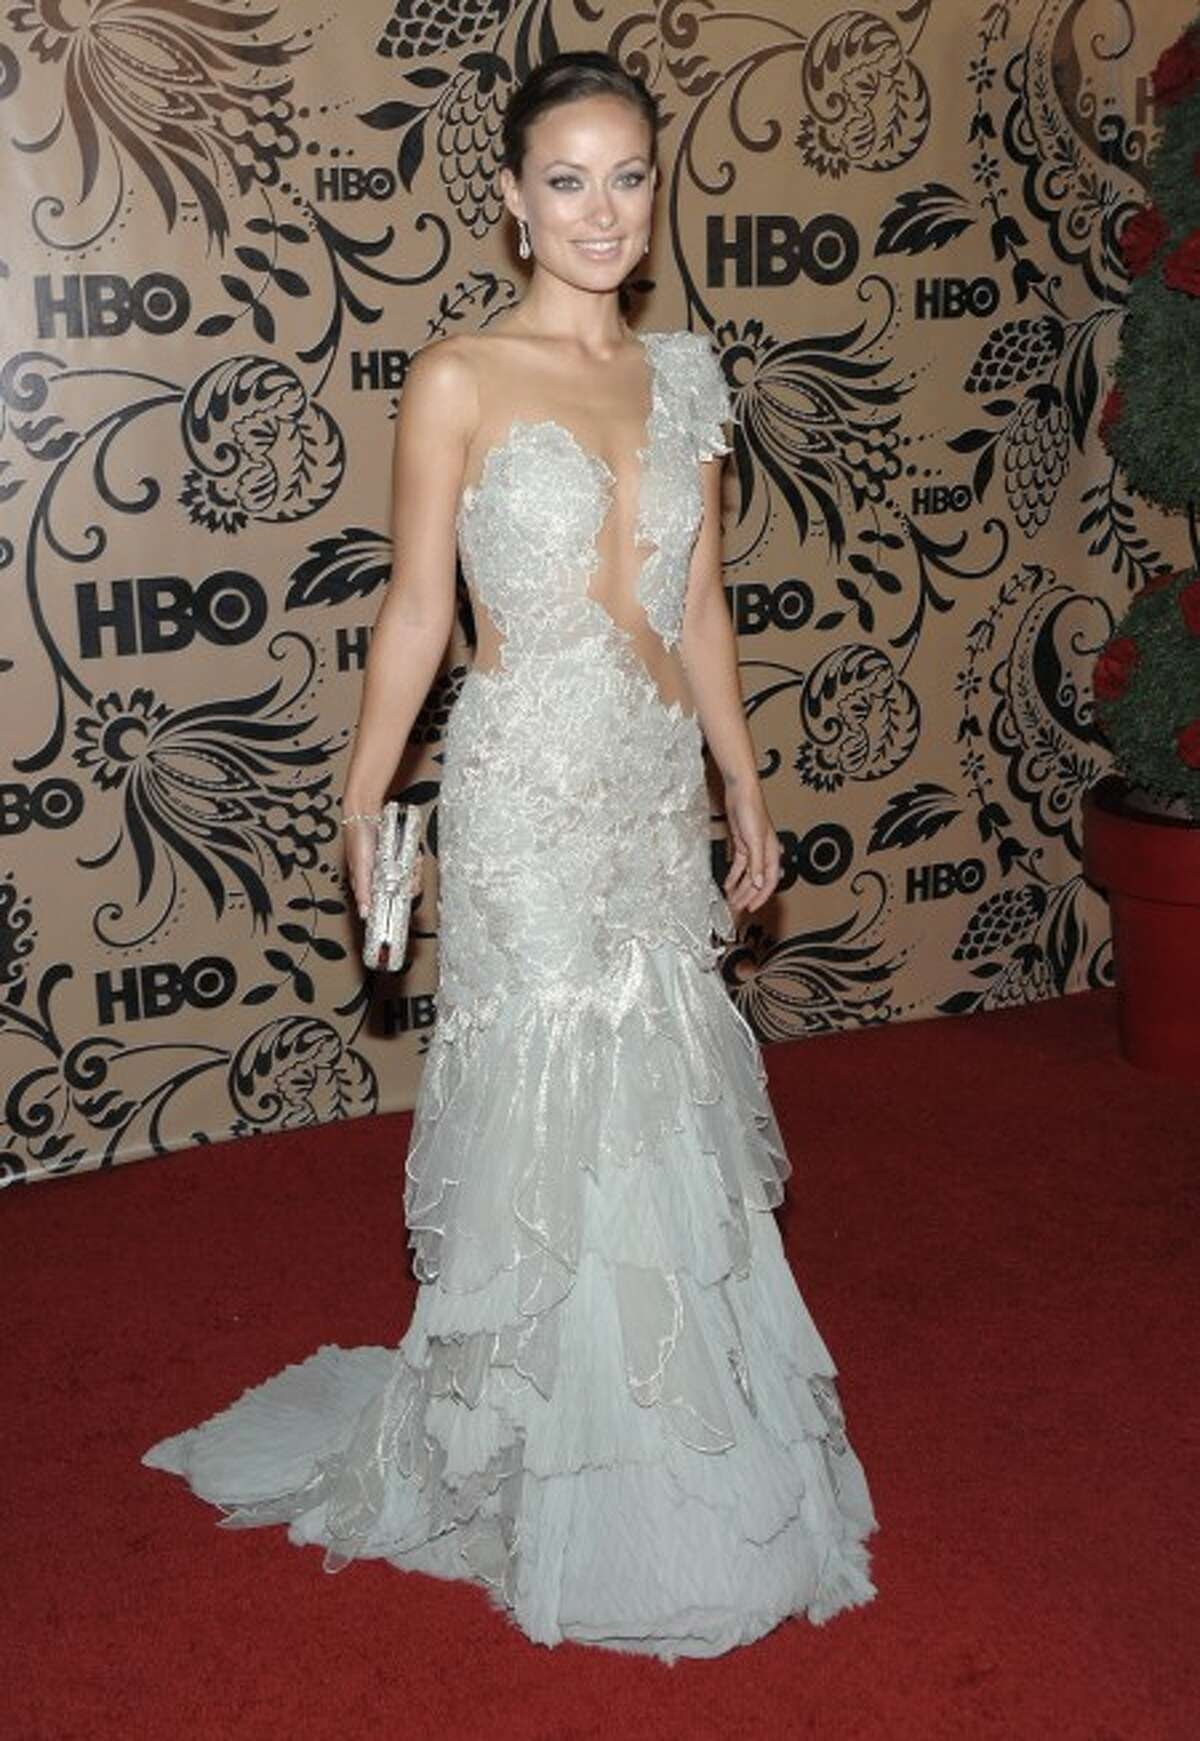 Actress Olivia Wilde arrives at the HBO Emmy Party in West Hollywood, Calif. on Sunday, Sept. 20, 2009. (AP Photo/Dan Steinberg)